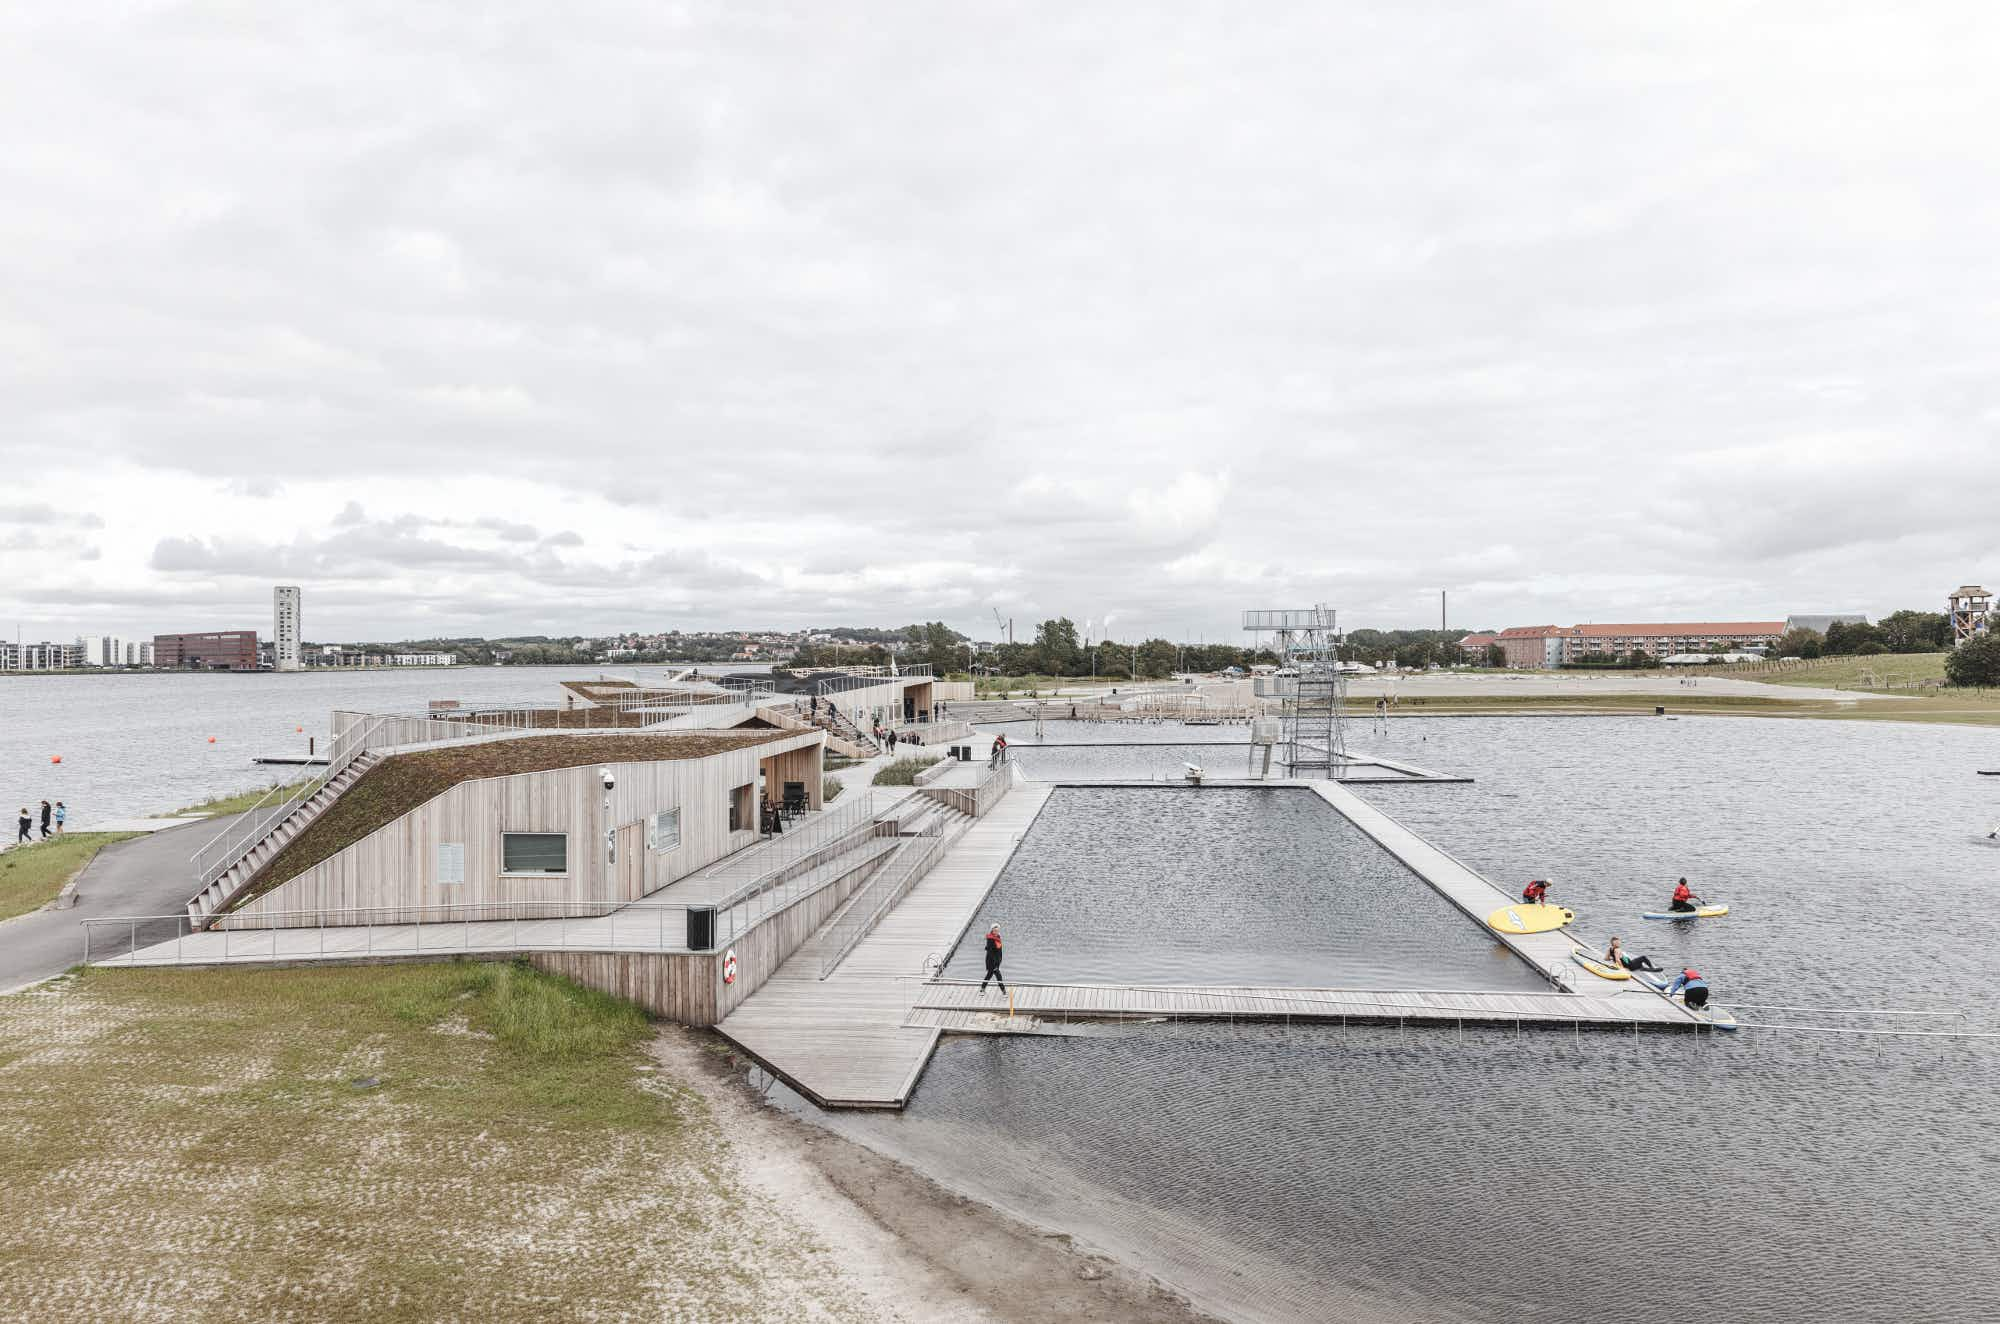 This dynamic new space on Denmark's Limfjord is a wonderland of activity